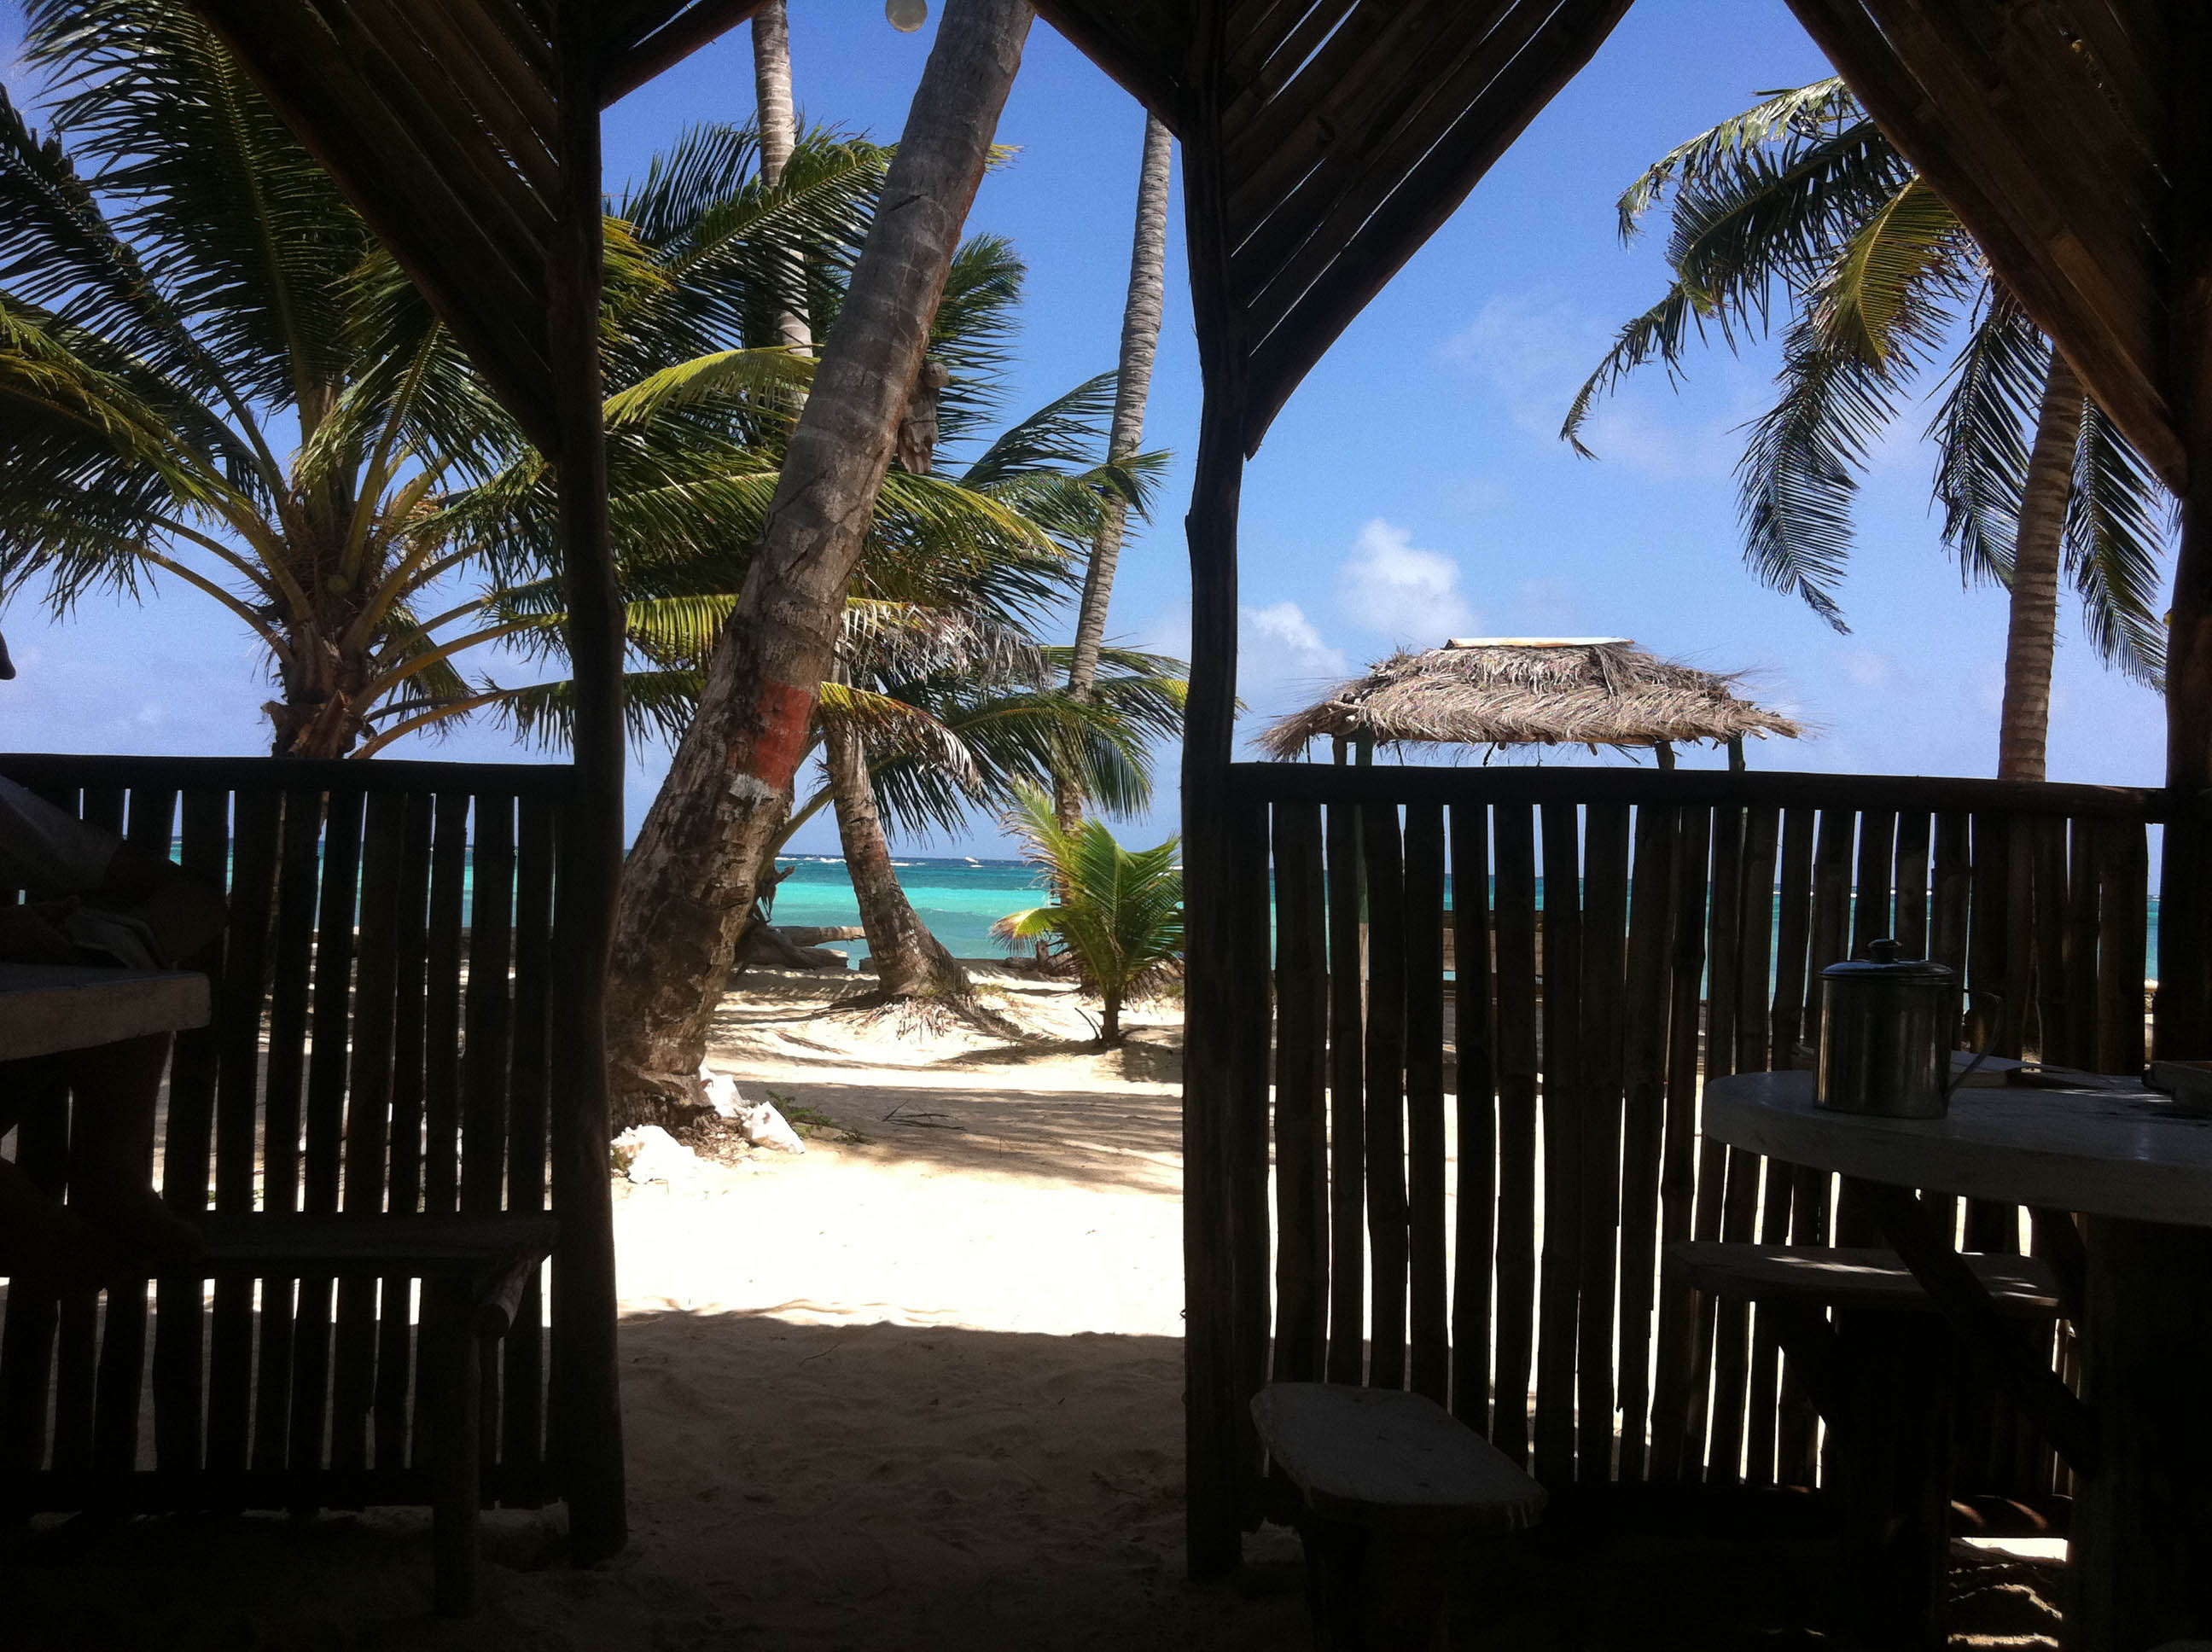 Thoughts from a Hammock in the Caribbean